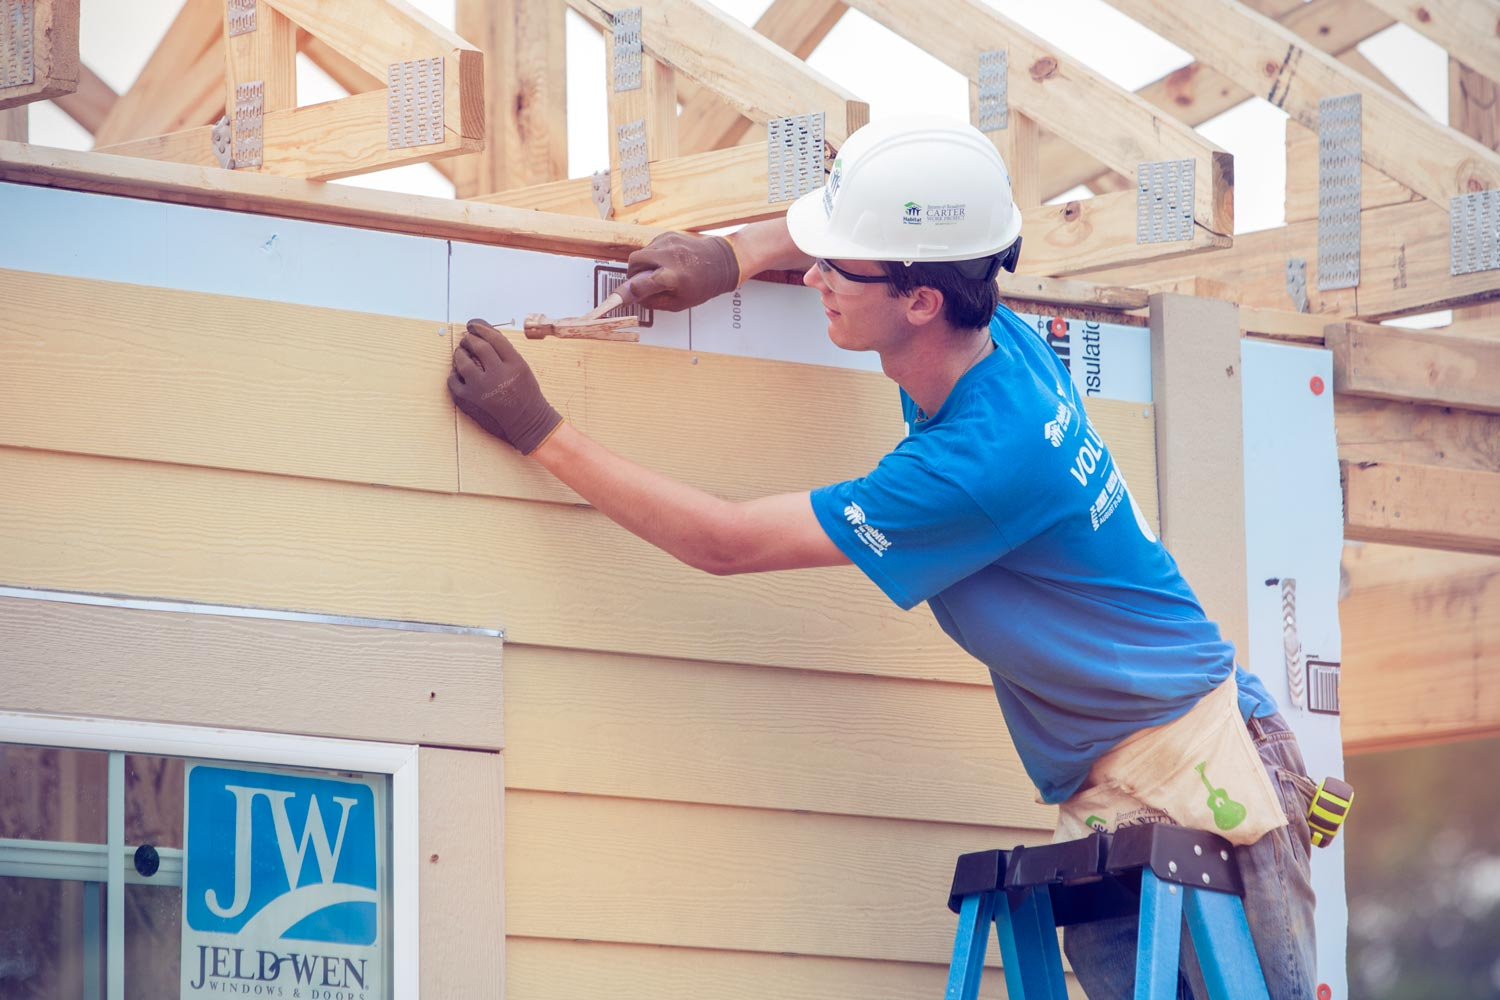 Thompson on site at the Habitat for Humanity Carter Work Project, sponsored by former President Jimmy Carter and his wife Rosalynn.